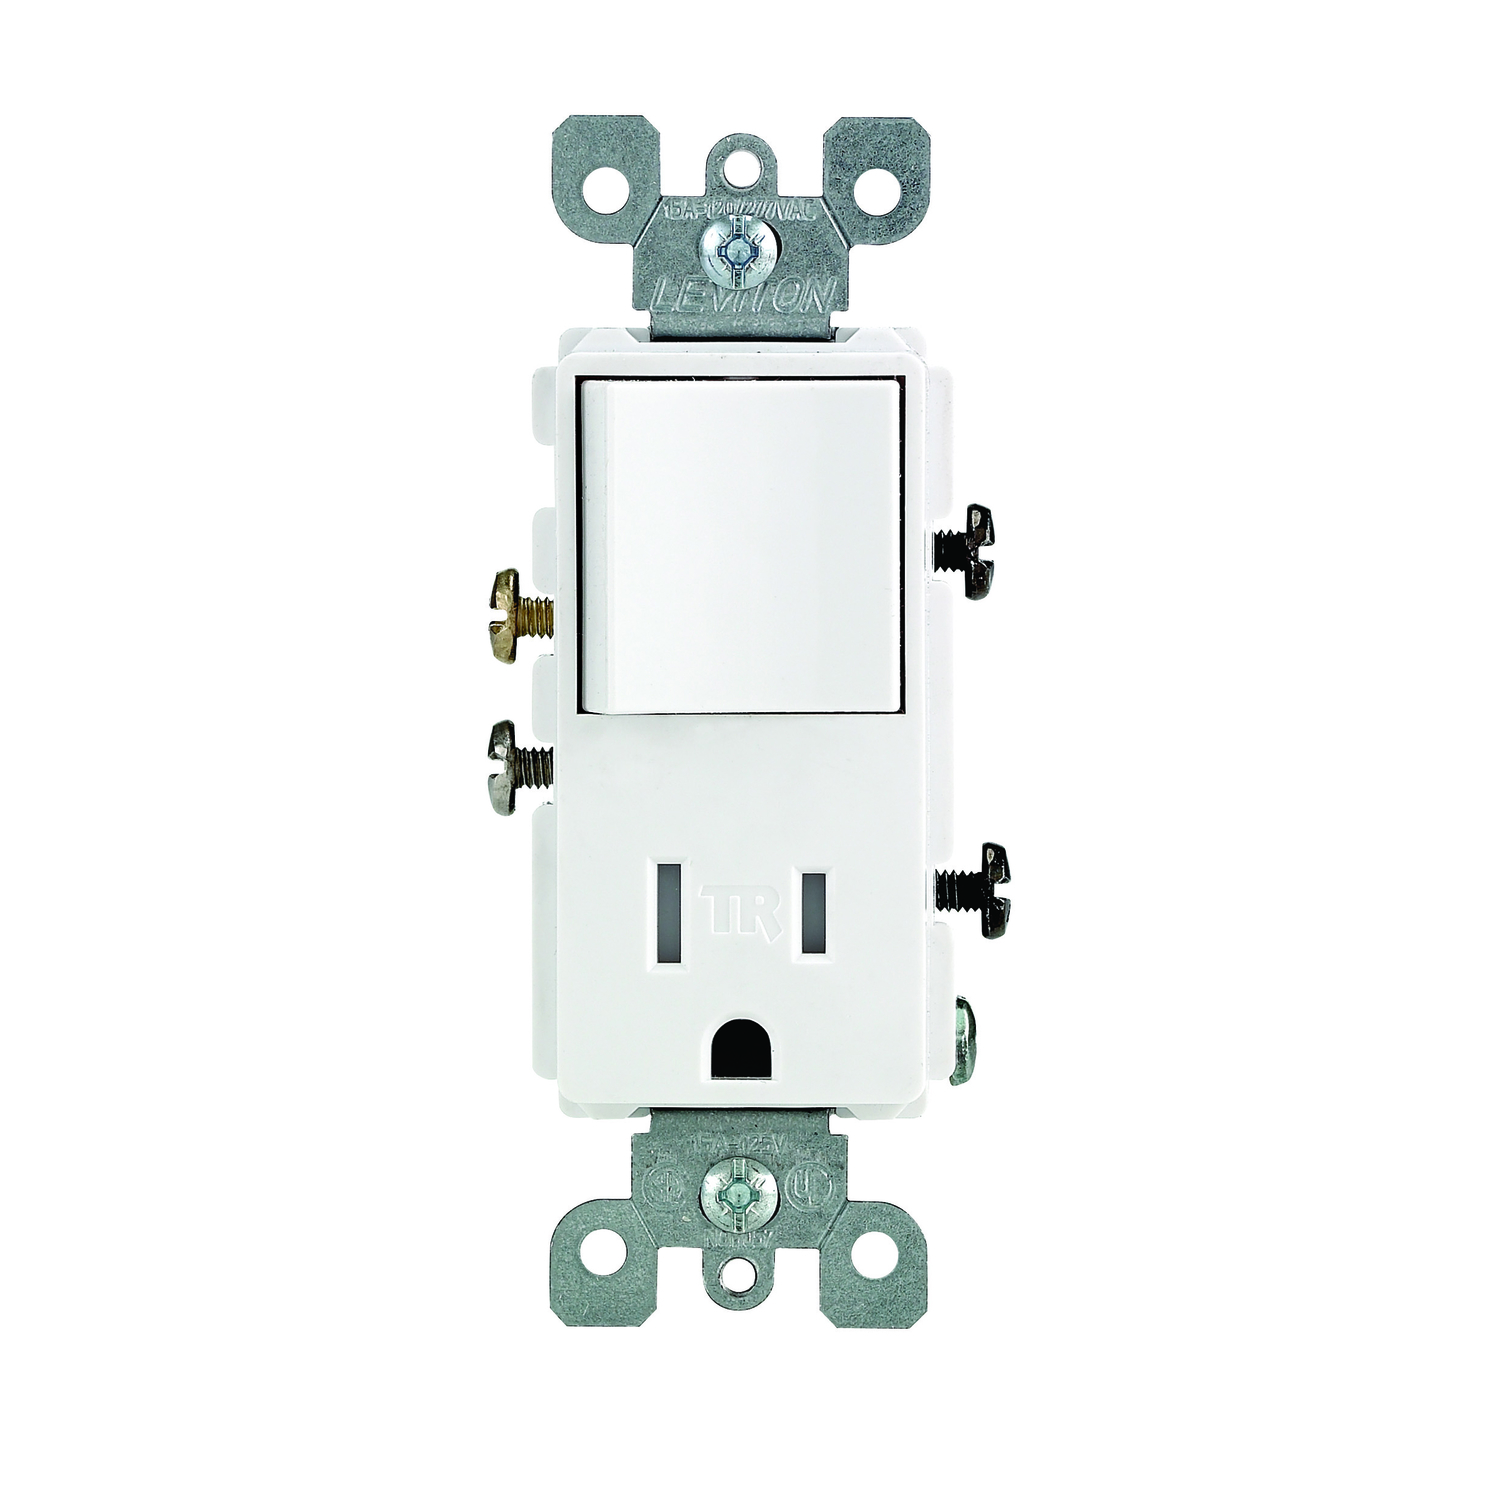 Leviton Decora 15 Amps 125 Volt White Combination Switch